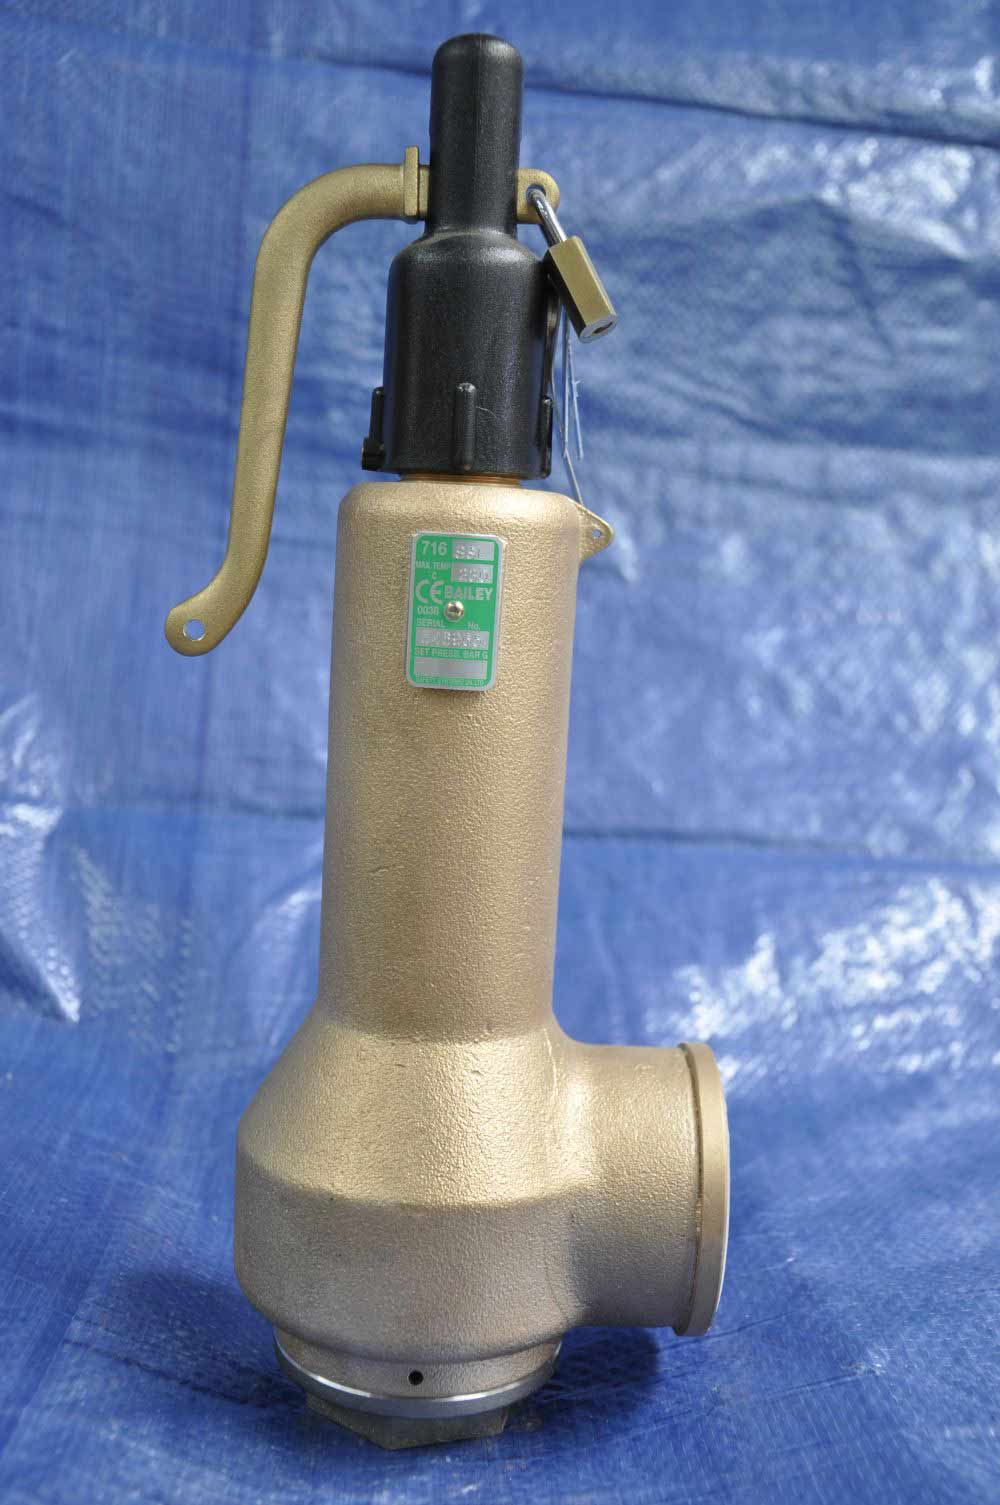 silvery pipe valve